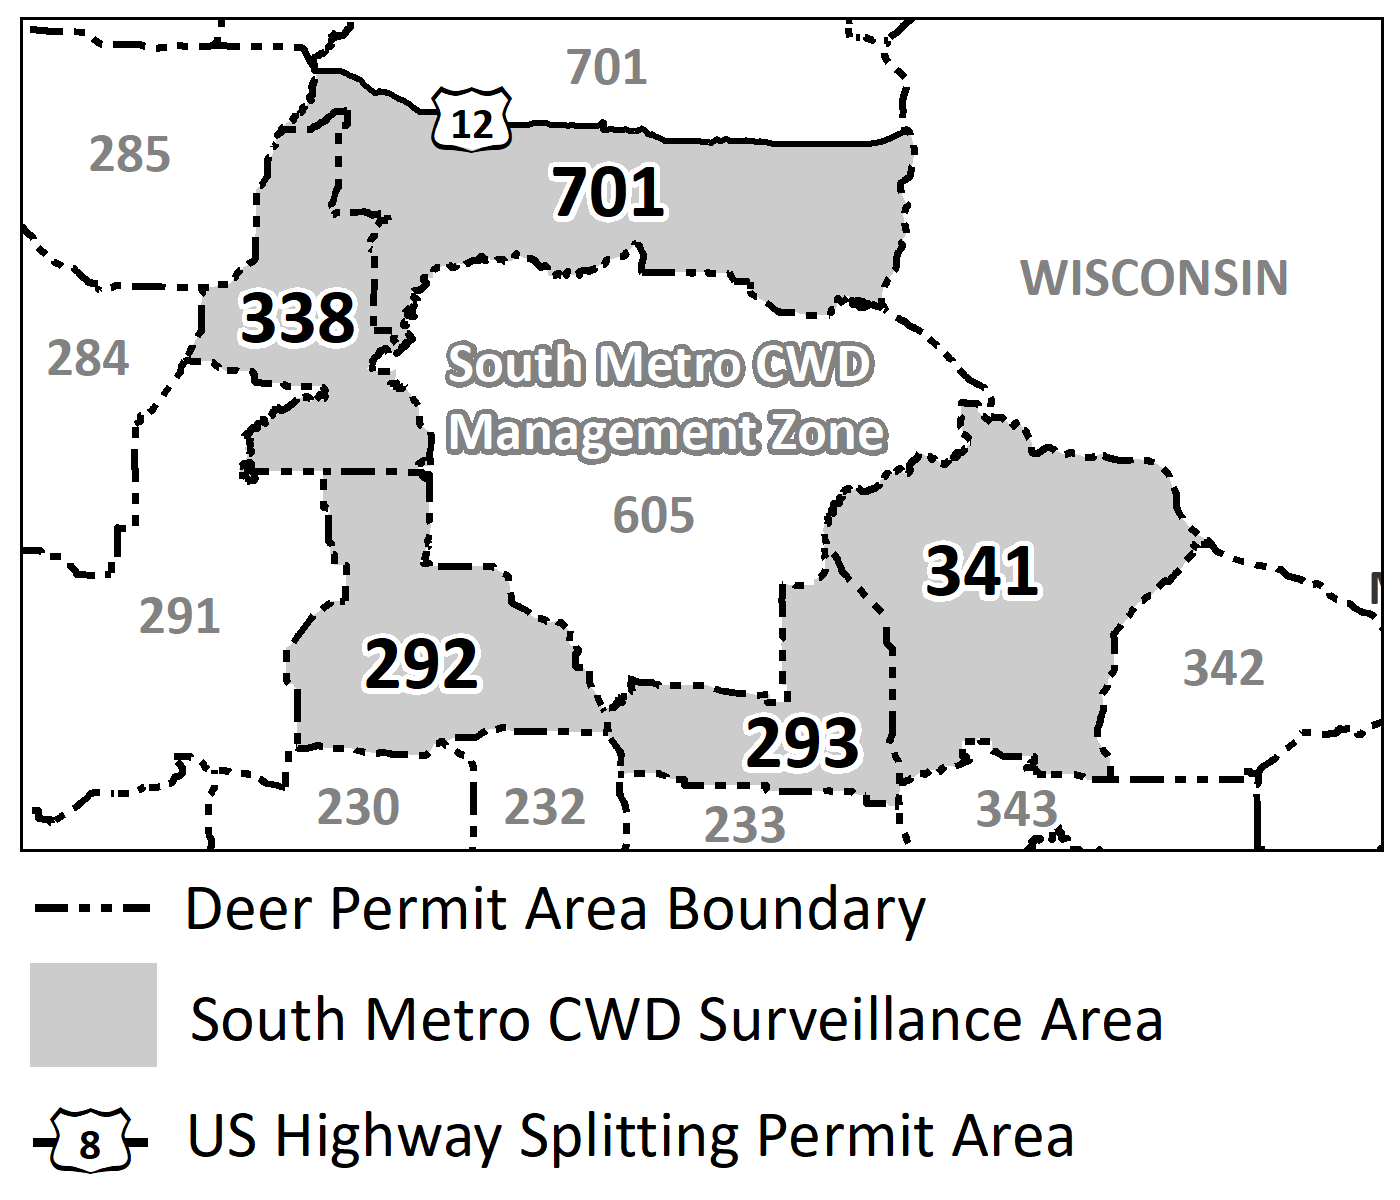 Map highlighting the DPAs included in the south metro CWD surveillance area: 292, 293, 338, 341 and 701.